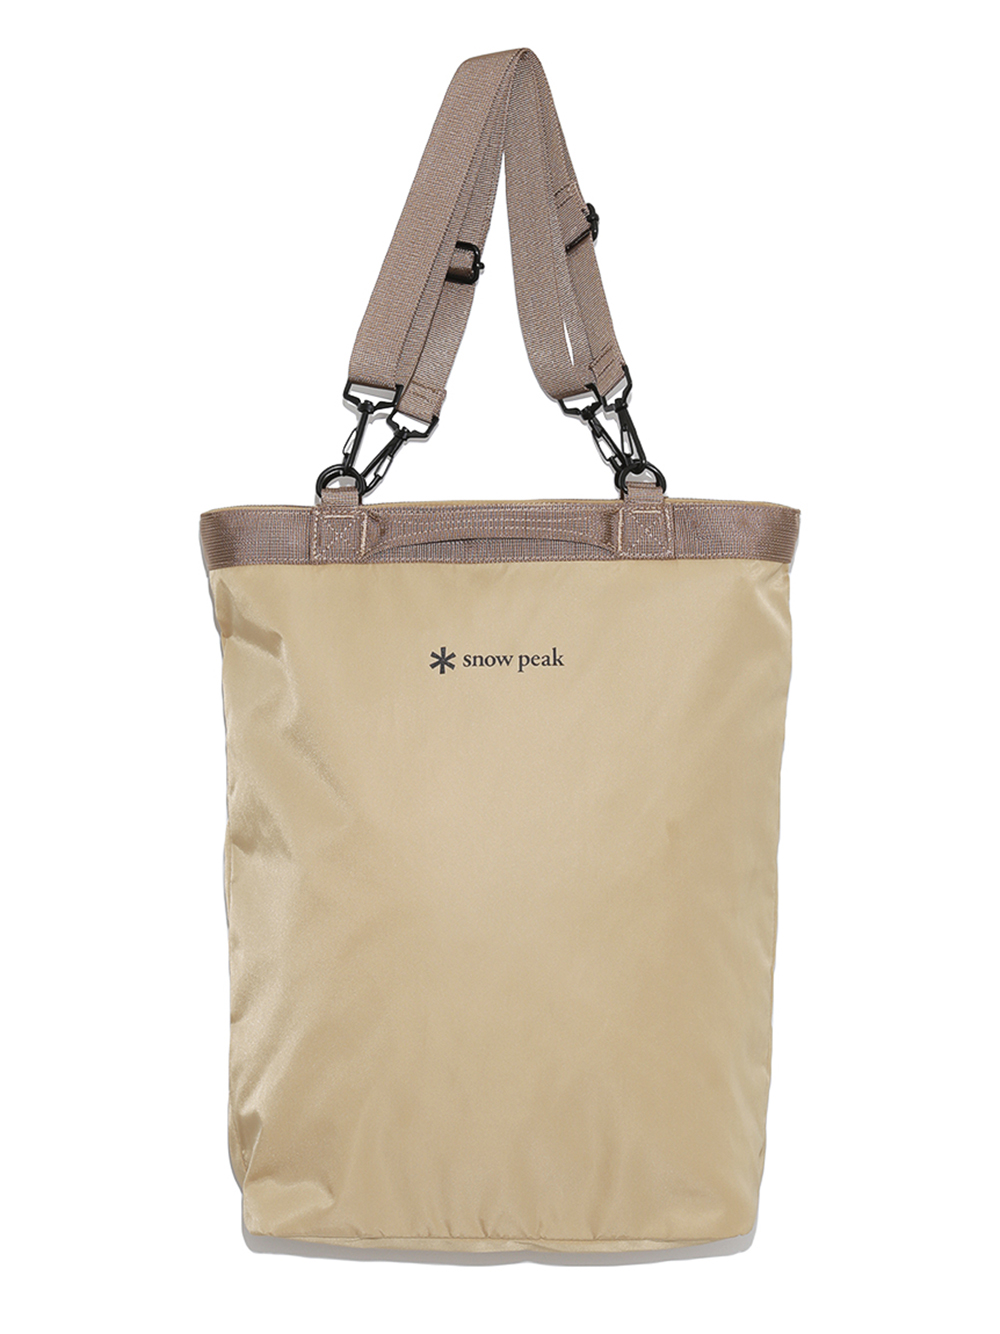 【emmi×Snowpeak】2way Tote Bag